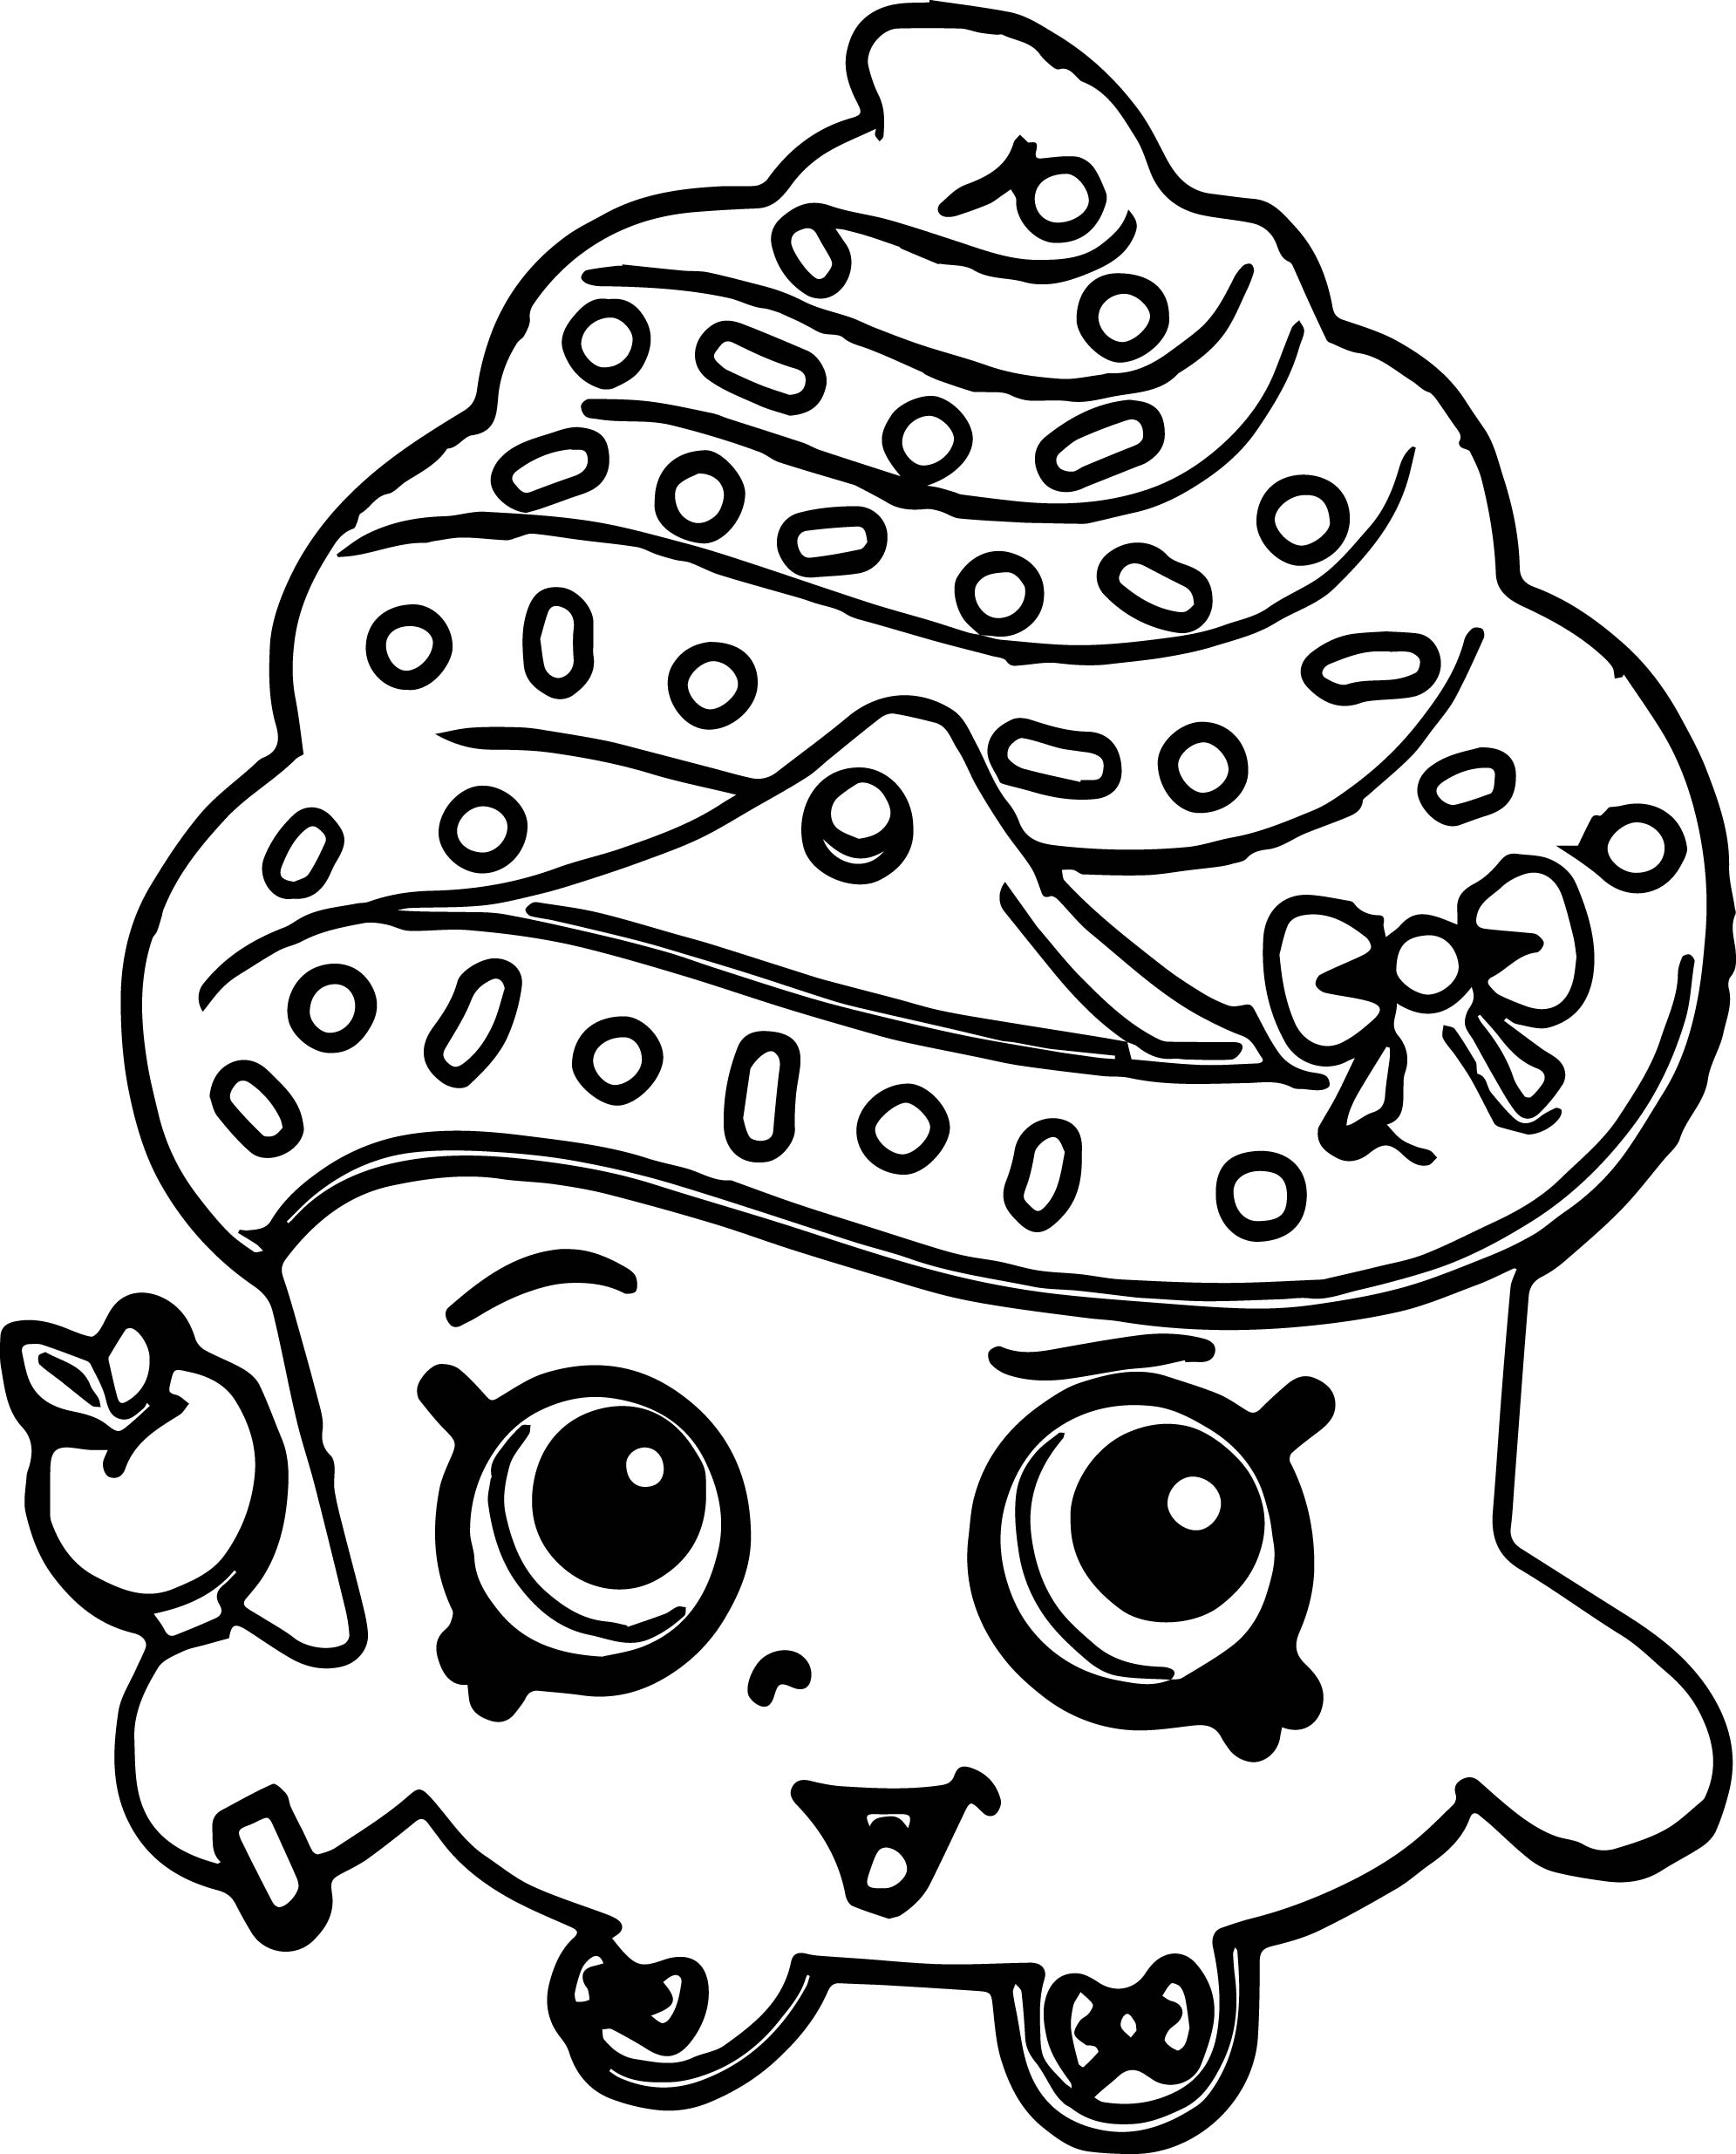 Coloring pages 4 wheeler - Shopkins Cute Cupcake Coloring Page